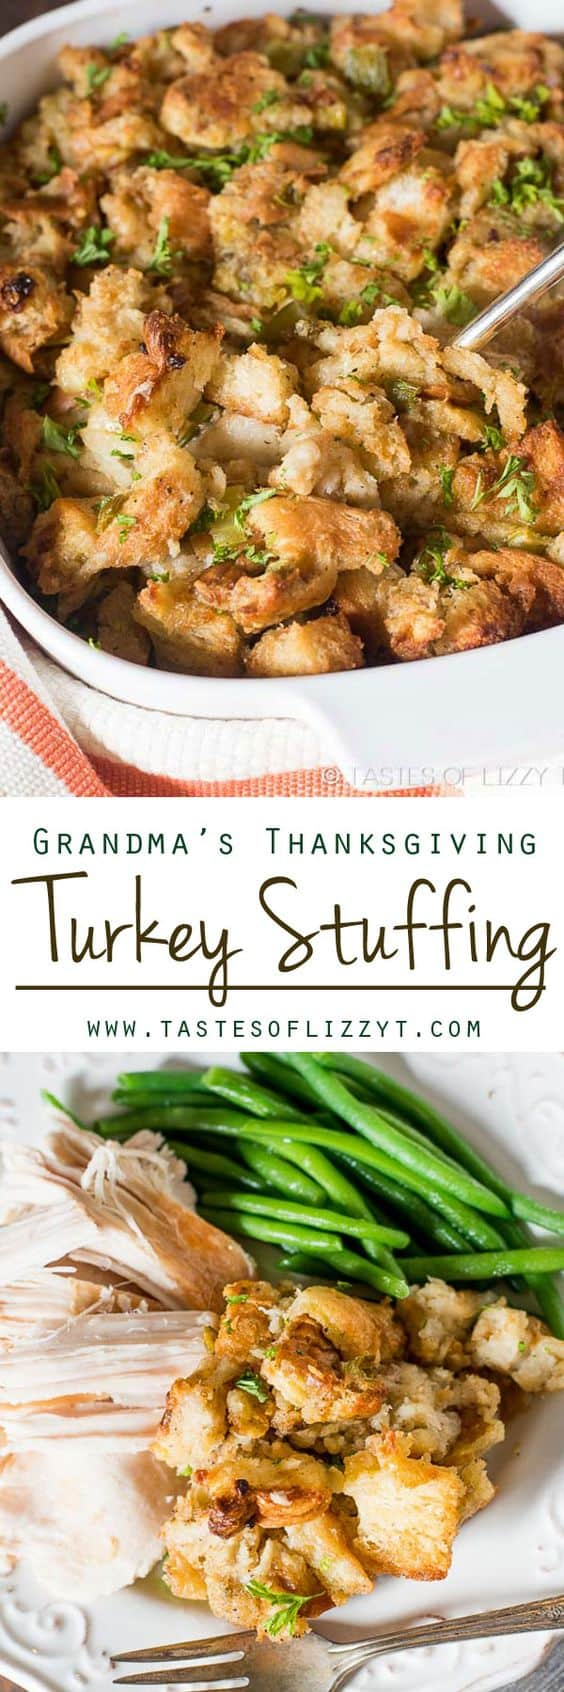 25 Best Thanksgiving recipes for dinner party! Are you hosting Thanksgiving this year? Get your cooking inspiration in Thanksgiving food, side dishes, find some turkey stuffing recipes for Thanksgiving.